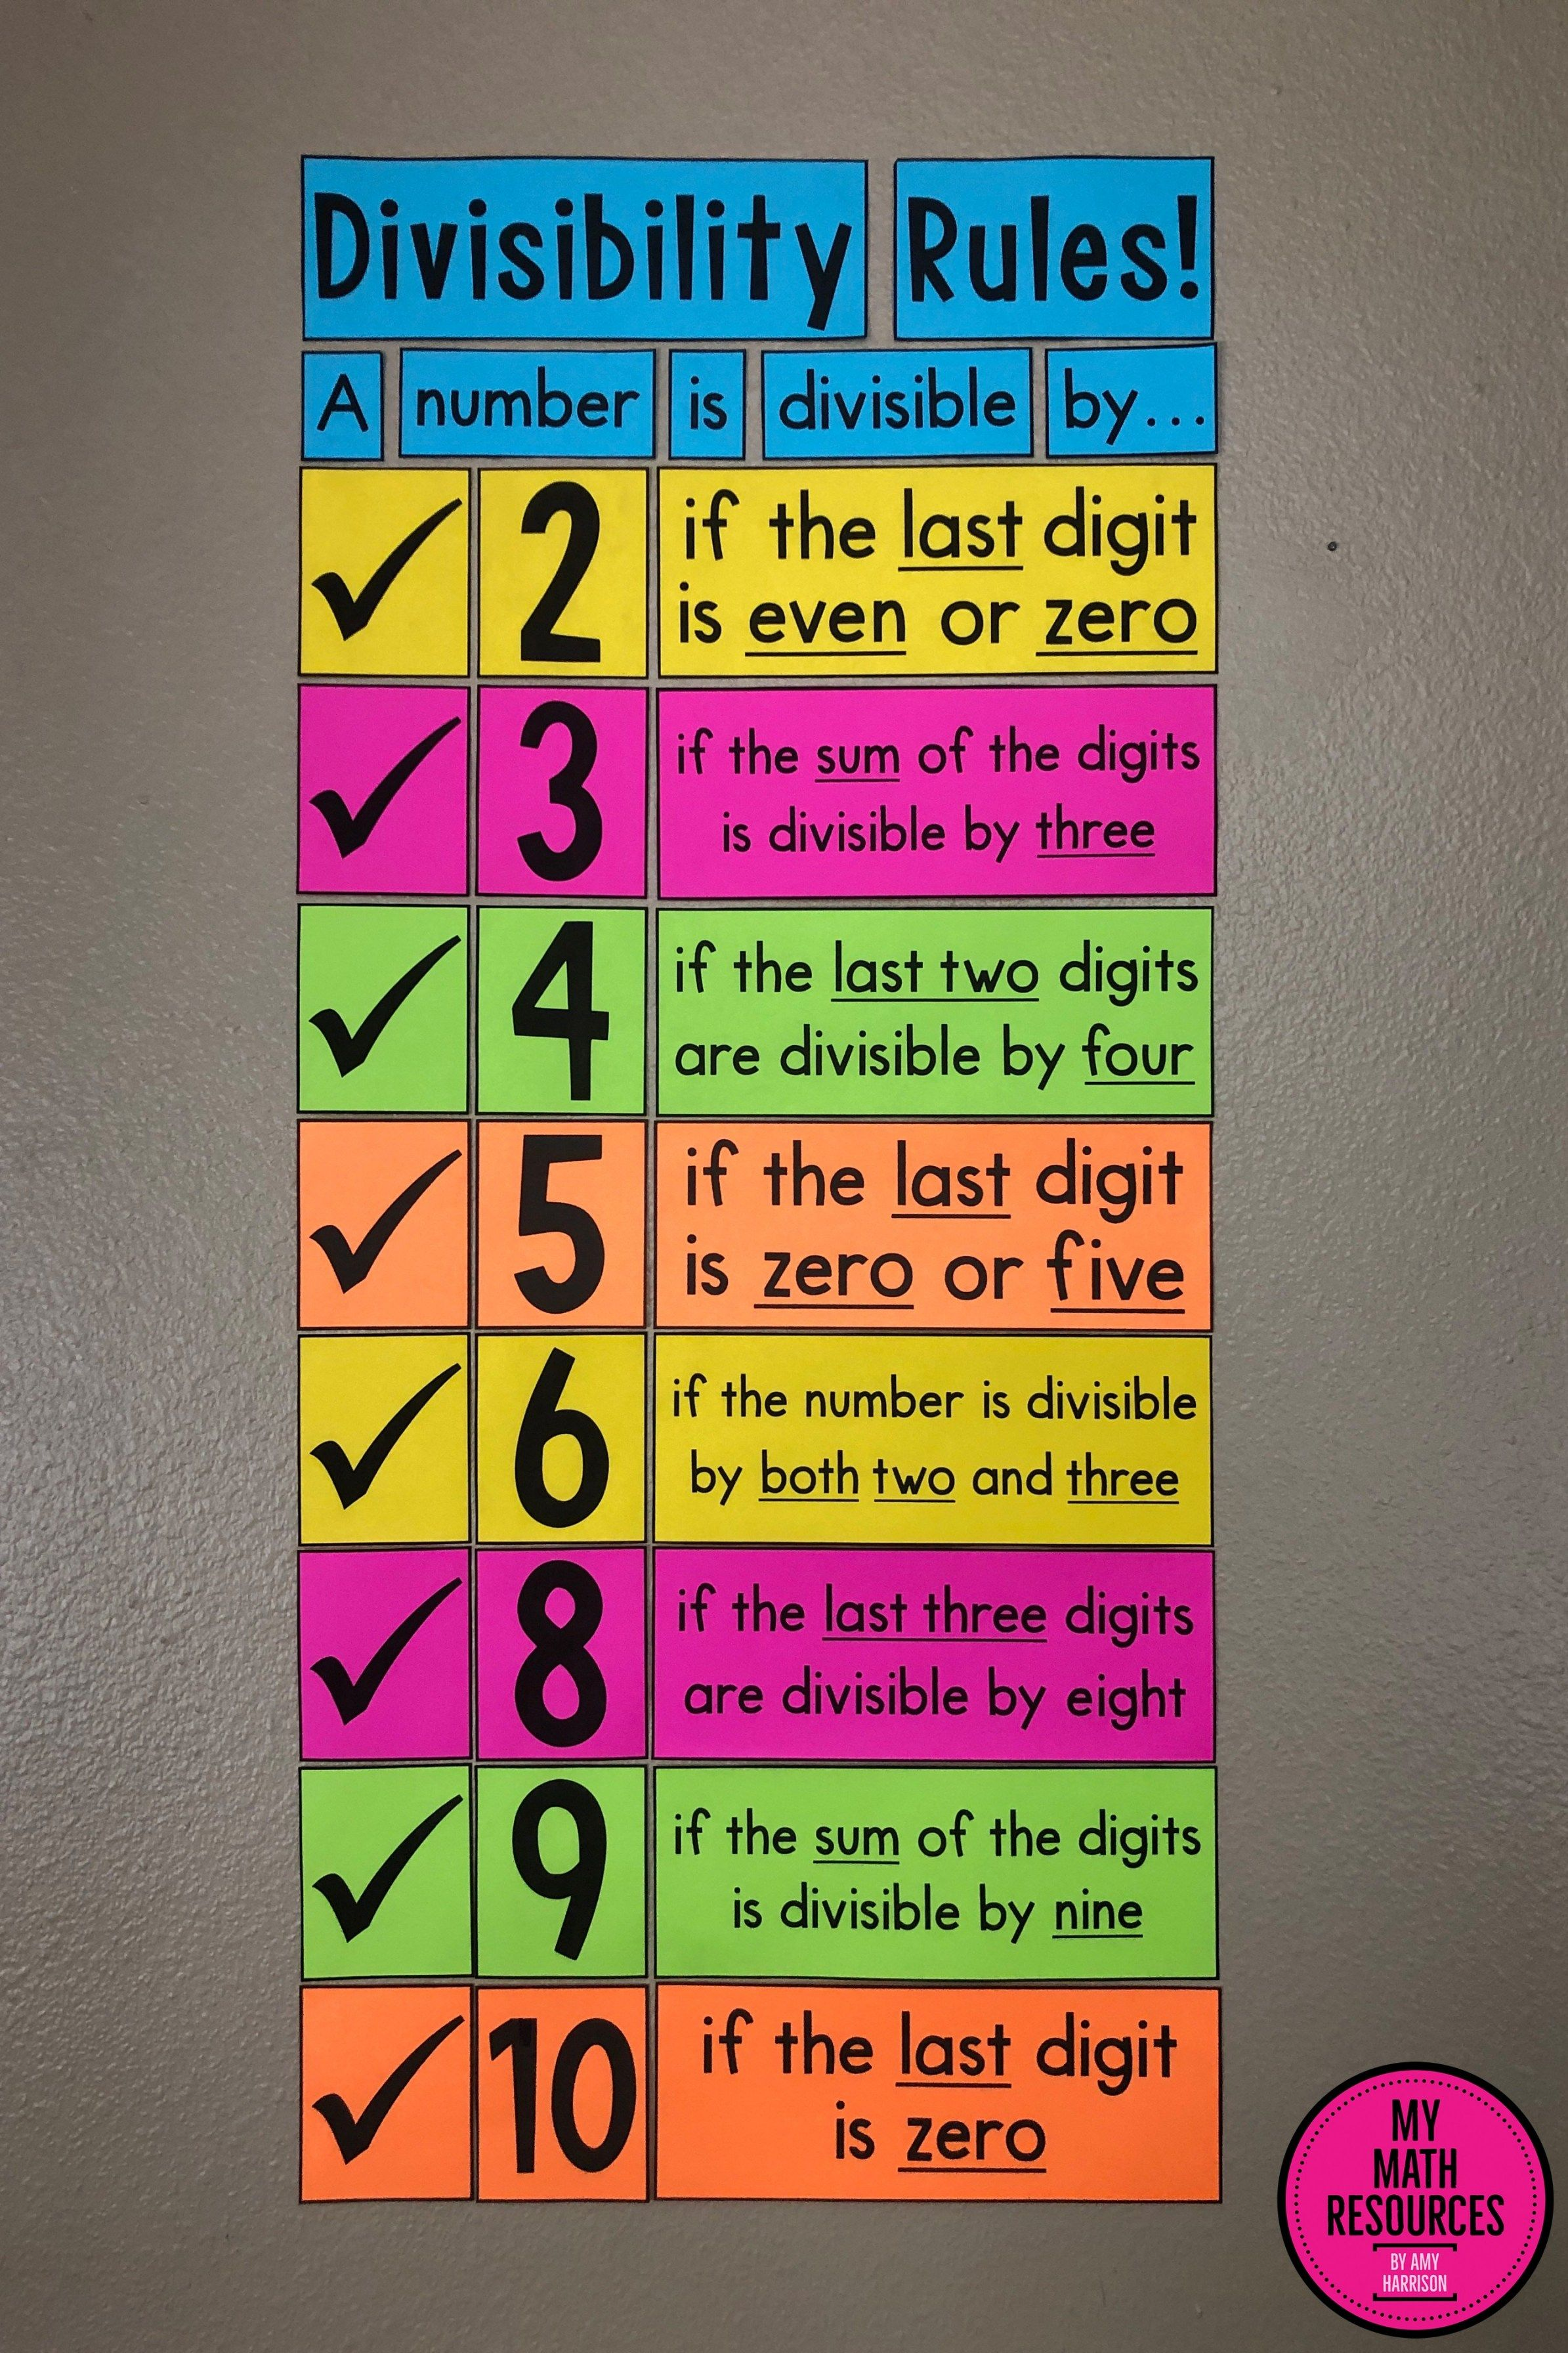 small resolution of My Math Resources - Divisibility Rules Poster   Math classroom decorations